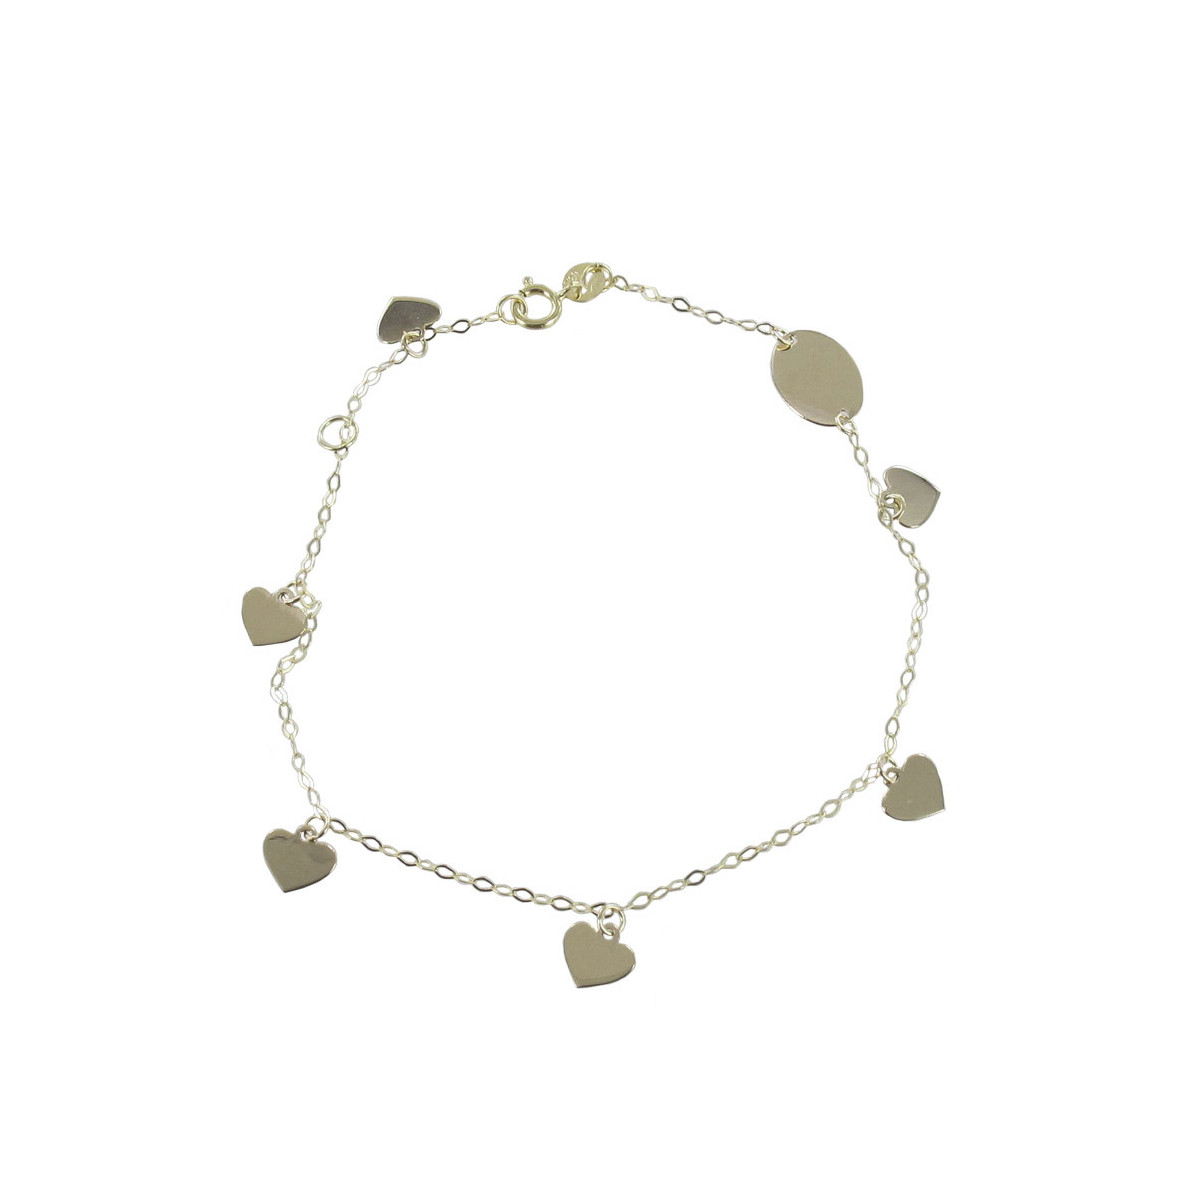 GOLD BRACELET WITH 5 HEARTS